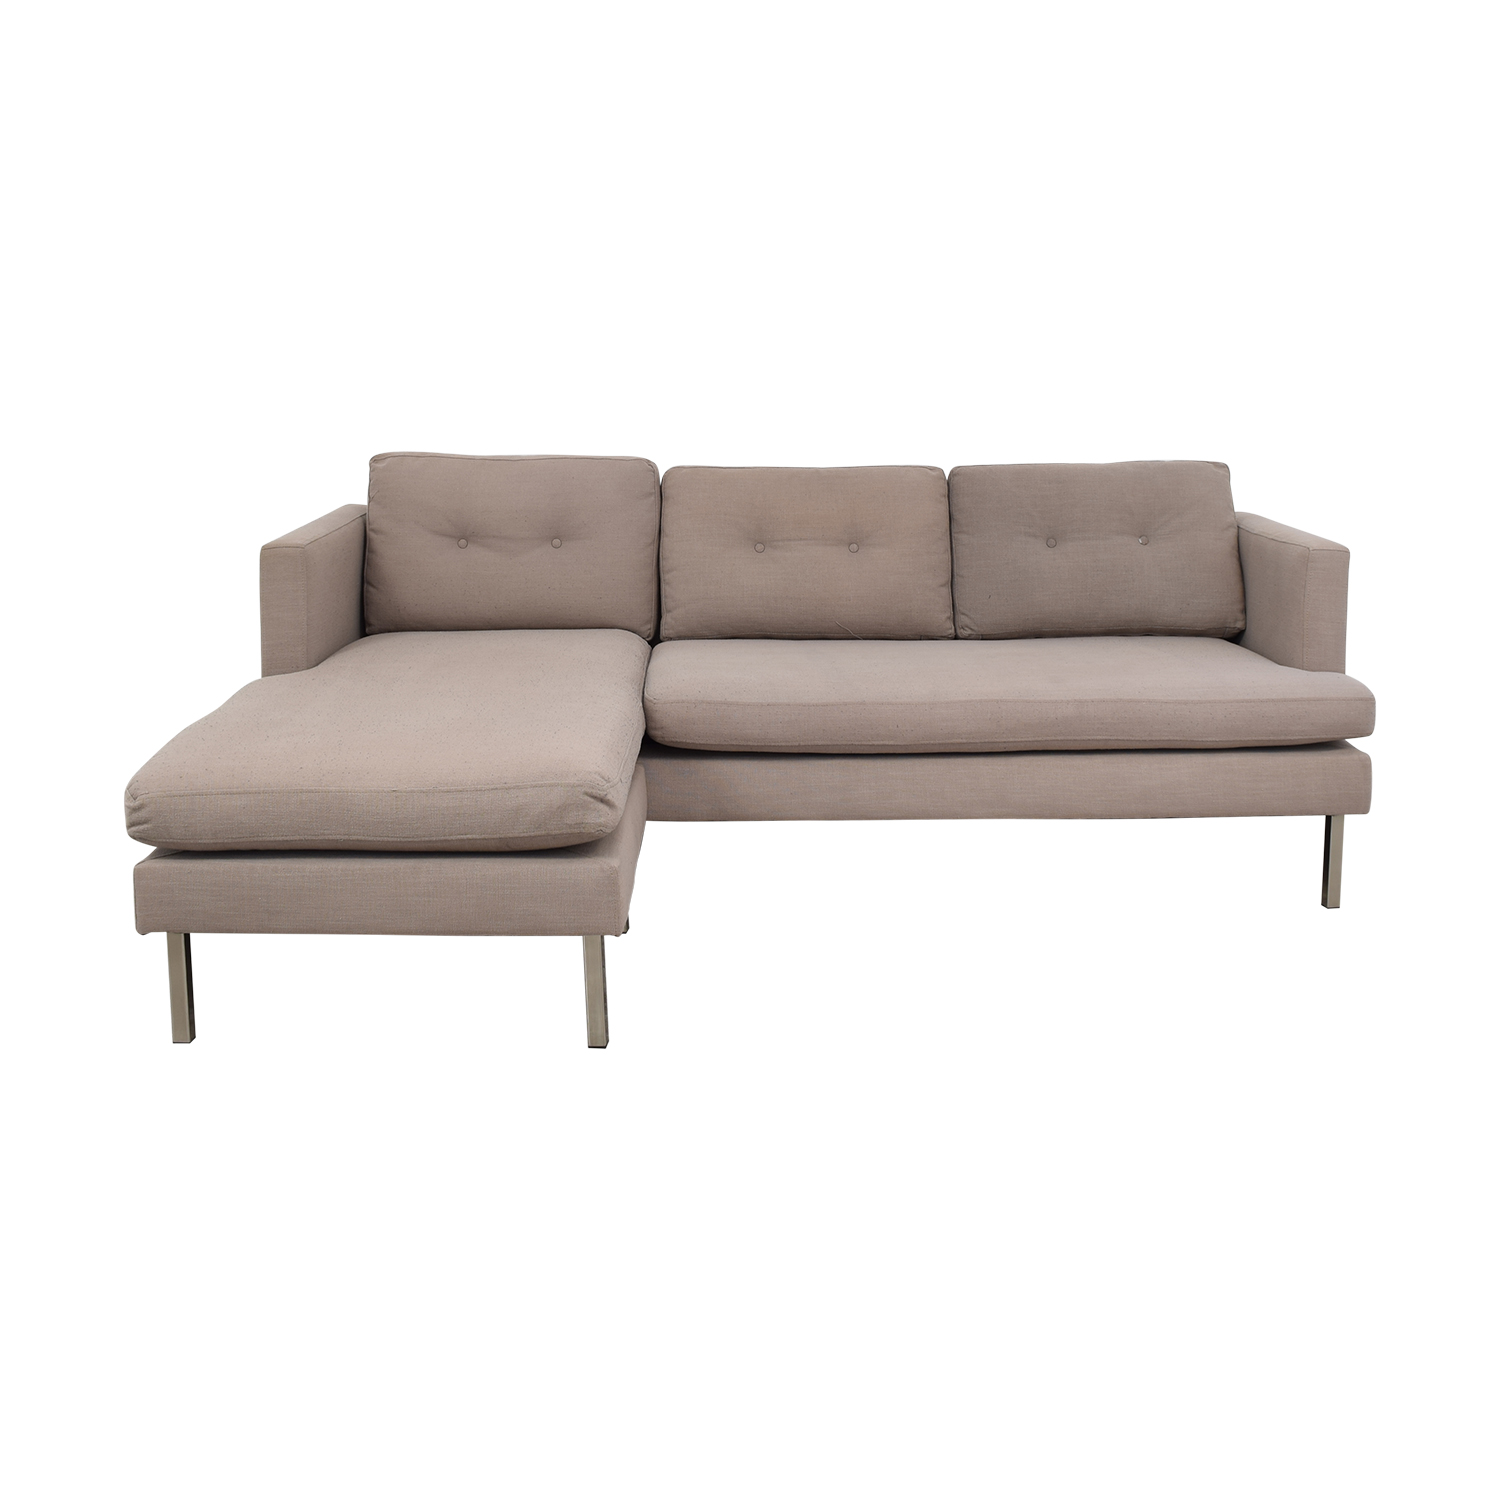 buy West Elm Marco Two-Piece Sectional Sofa in Chenille Tweed West Elm